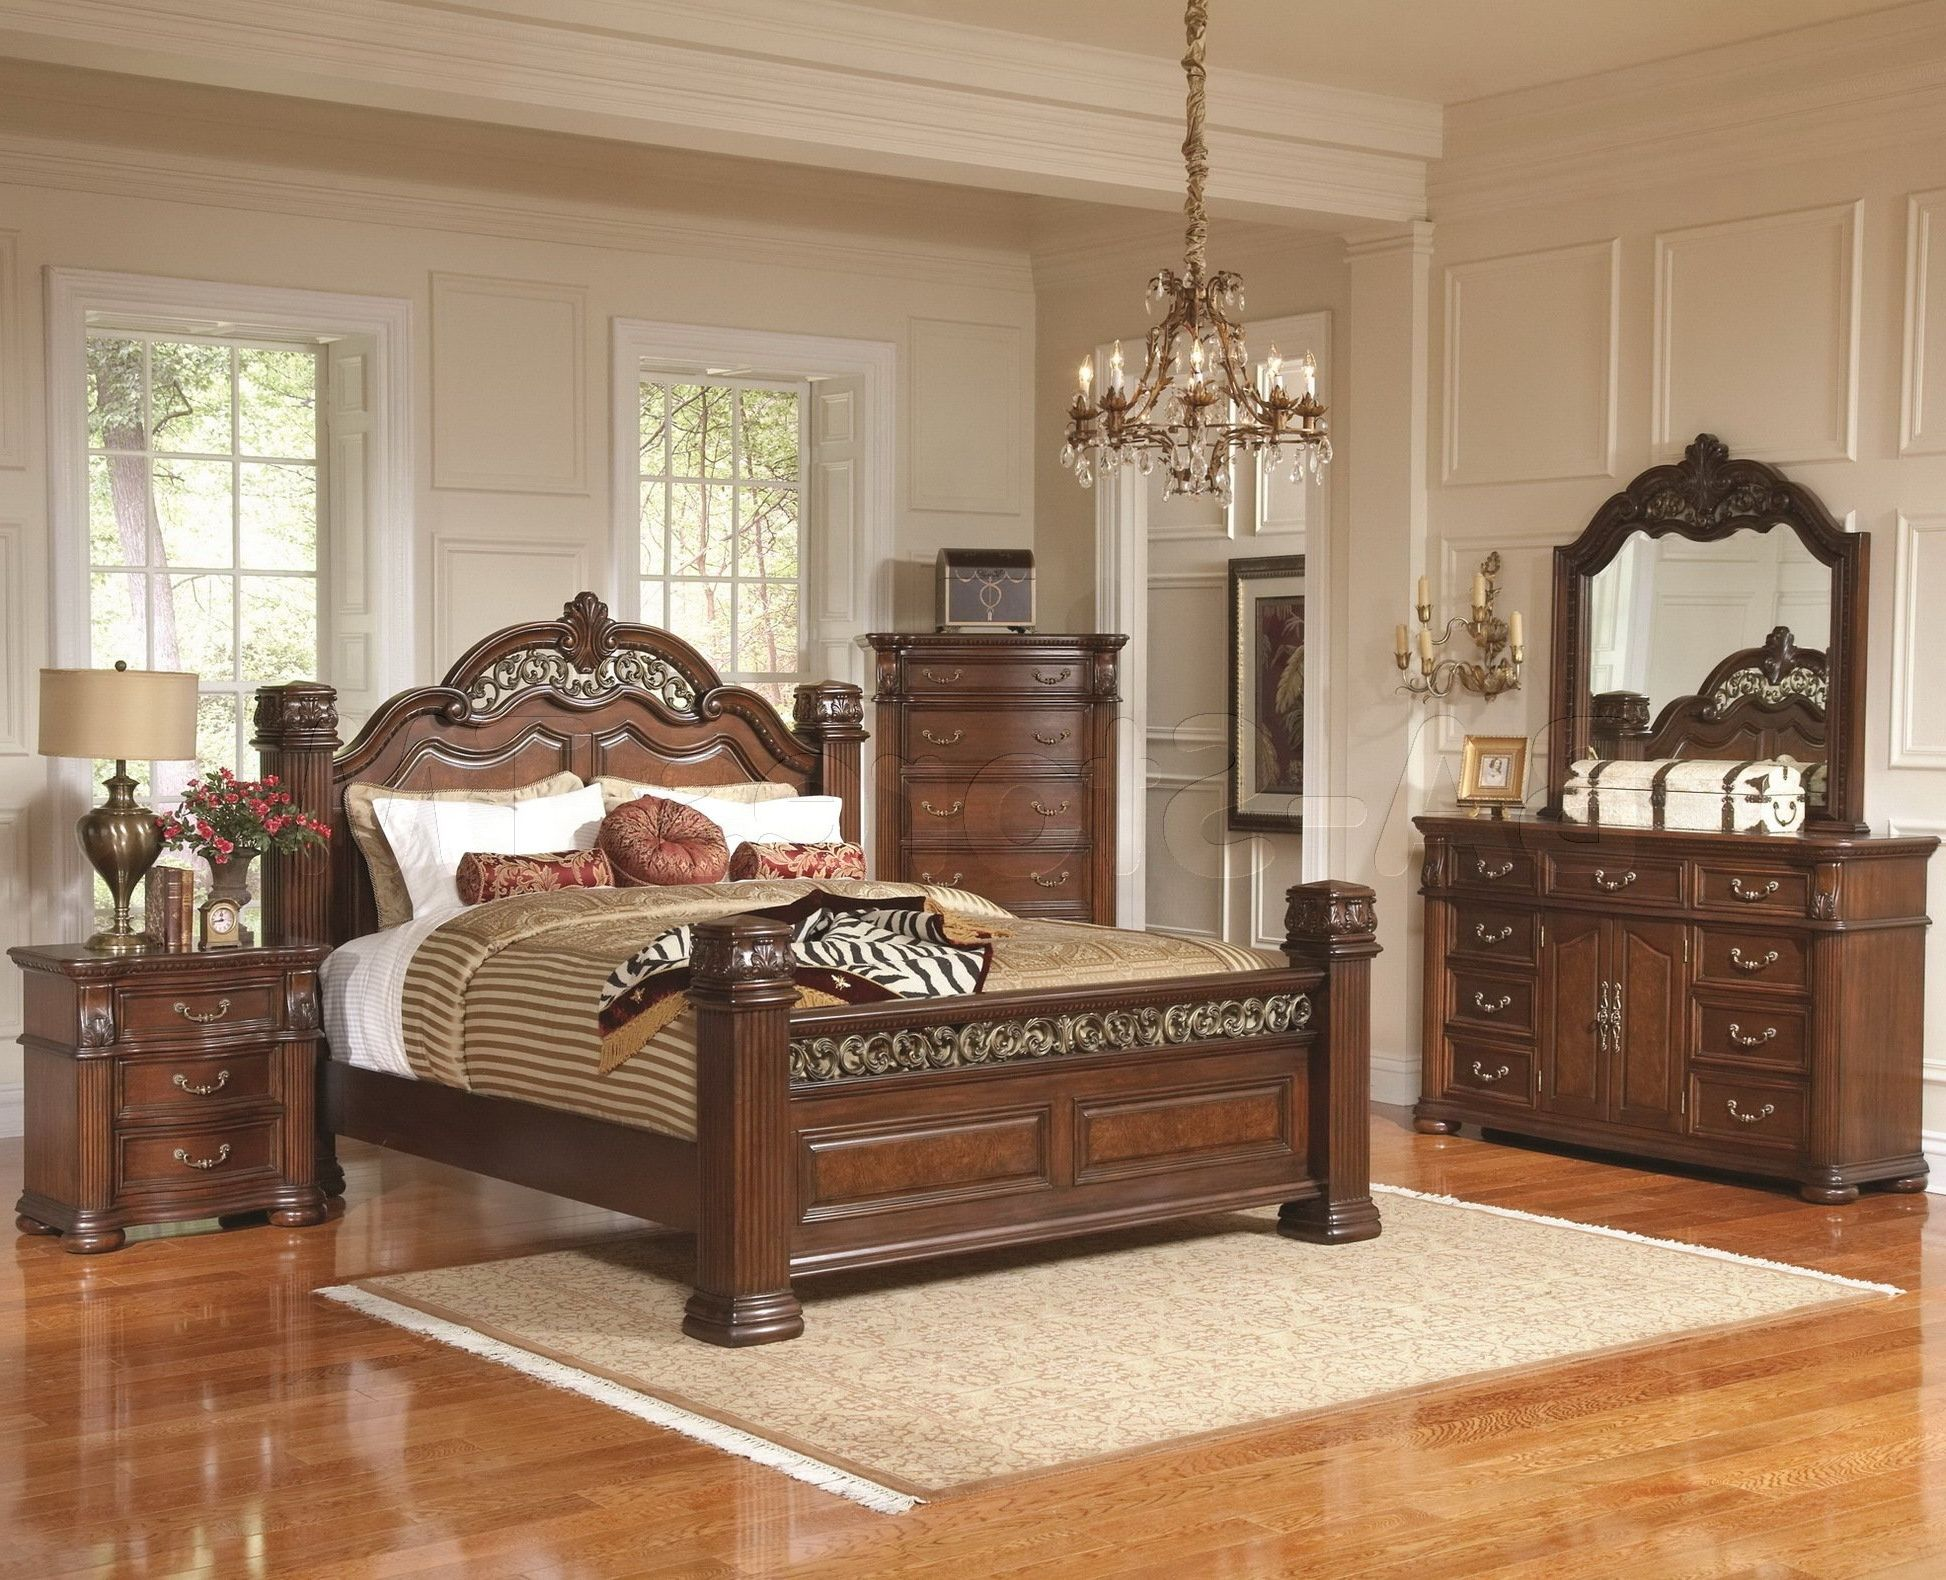 Cheap bedroom sets with mattress included nice design ahoustoncom